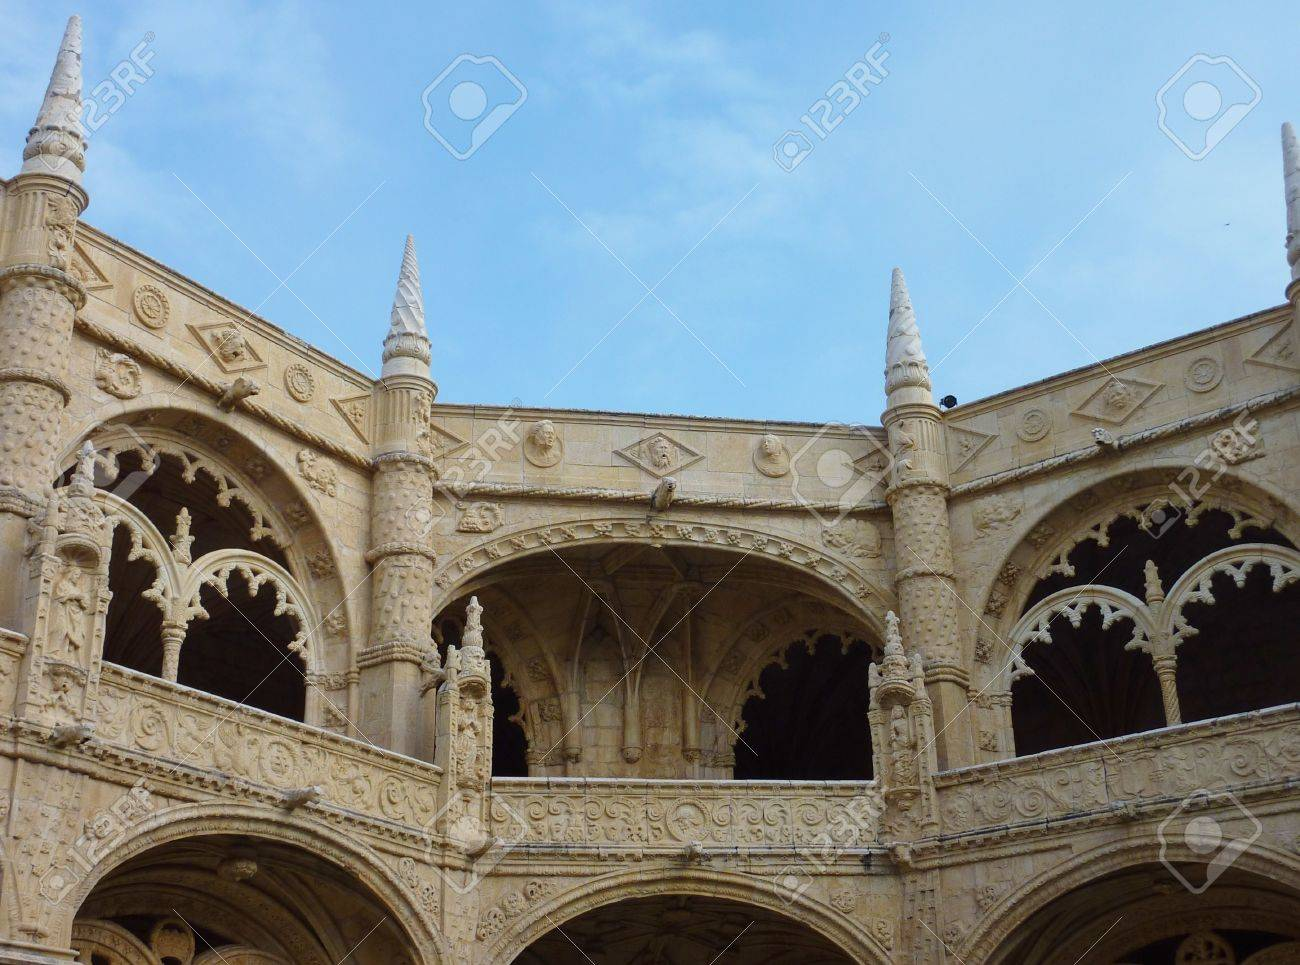 A detail of the arcade of the courtyard of the Hieronymus monastery in Belem a district of Lisbon in Portugal Stock Photo - 12053300